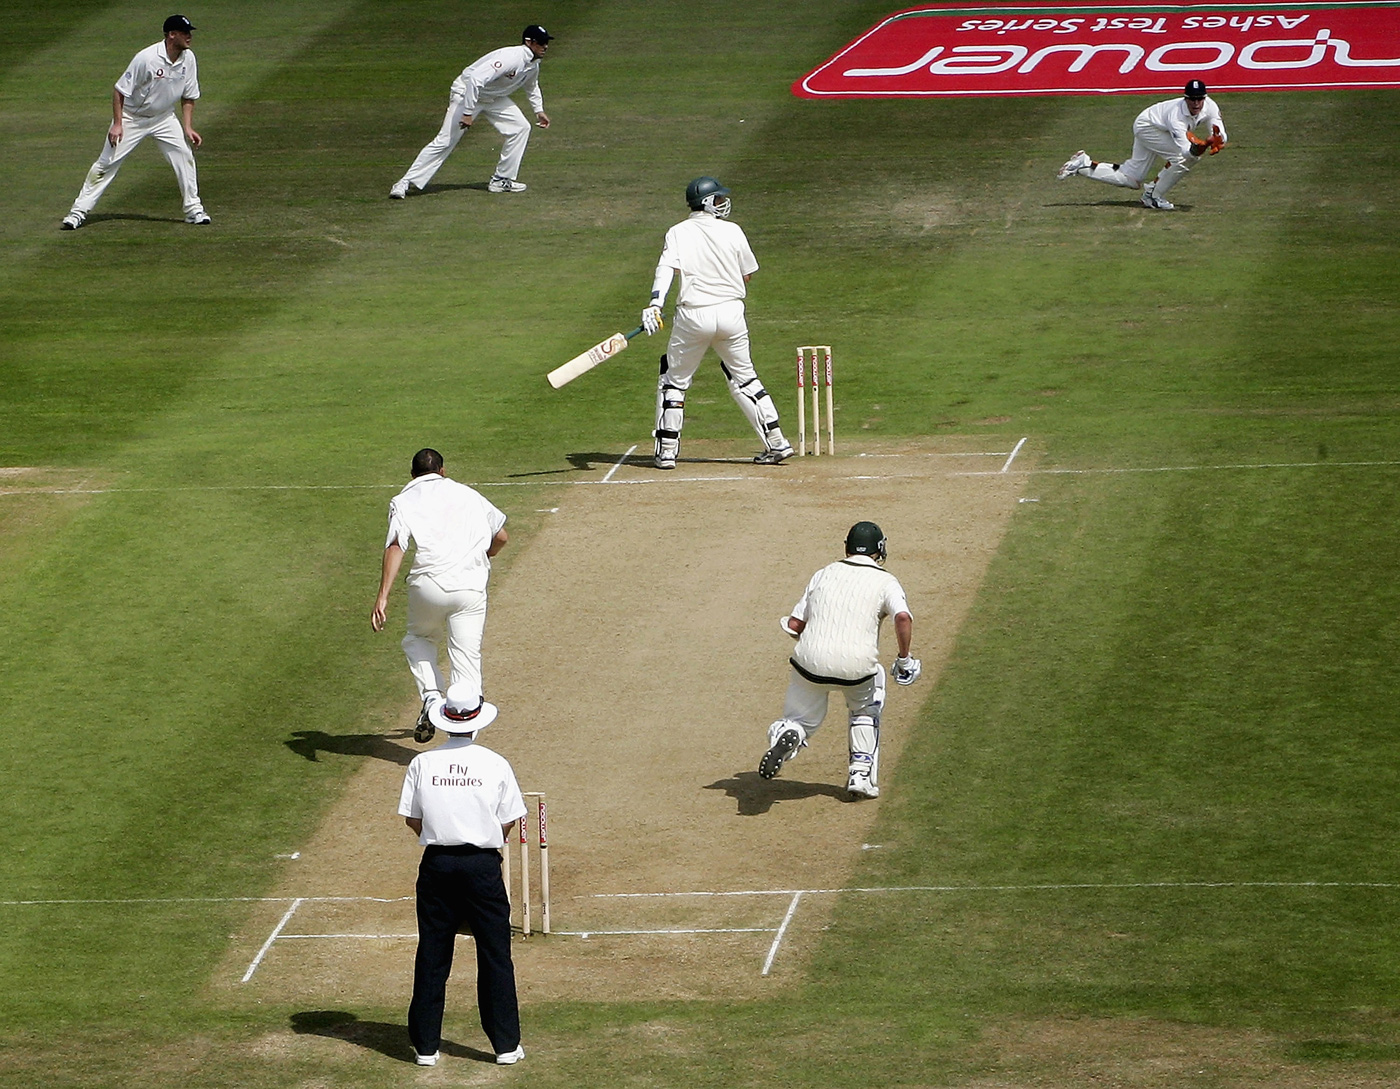 Edgbaston 2005: